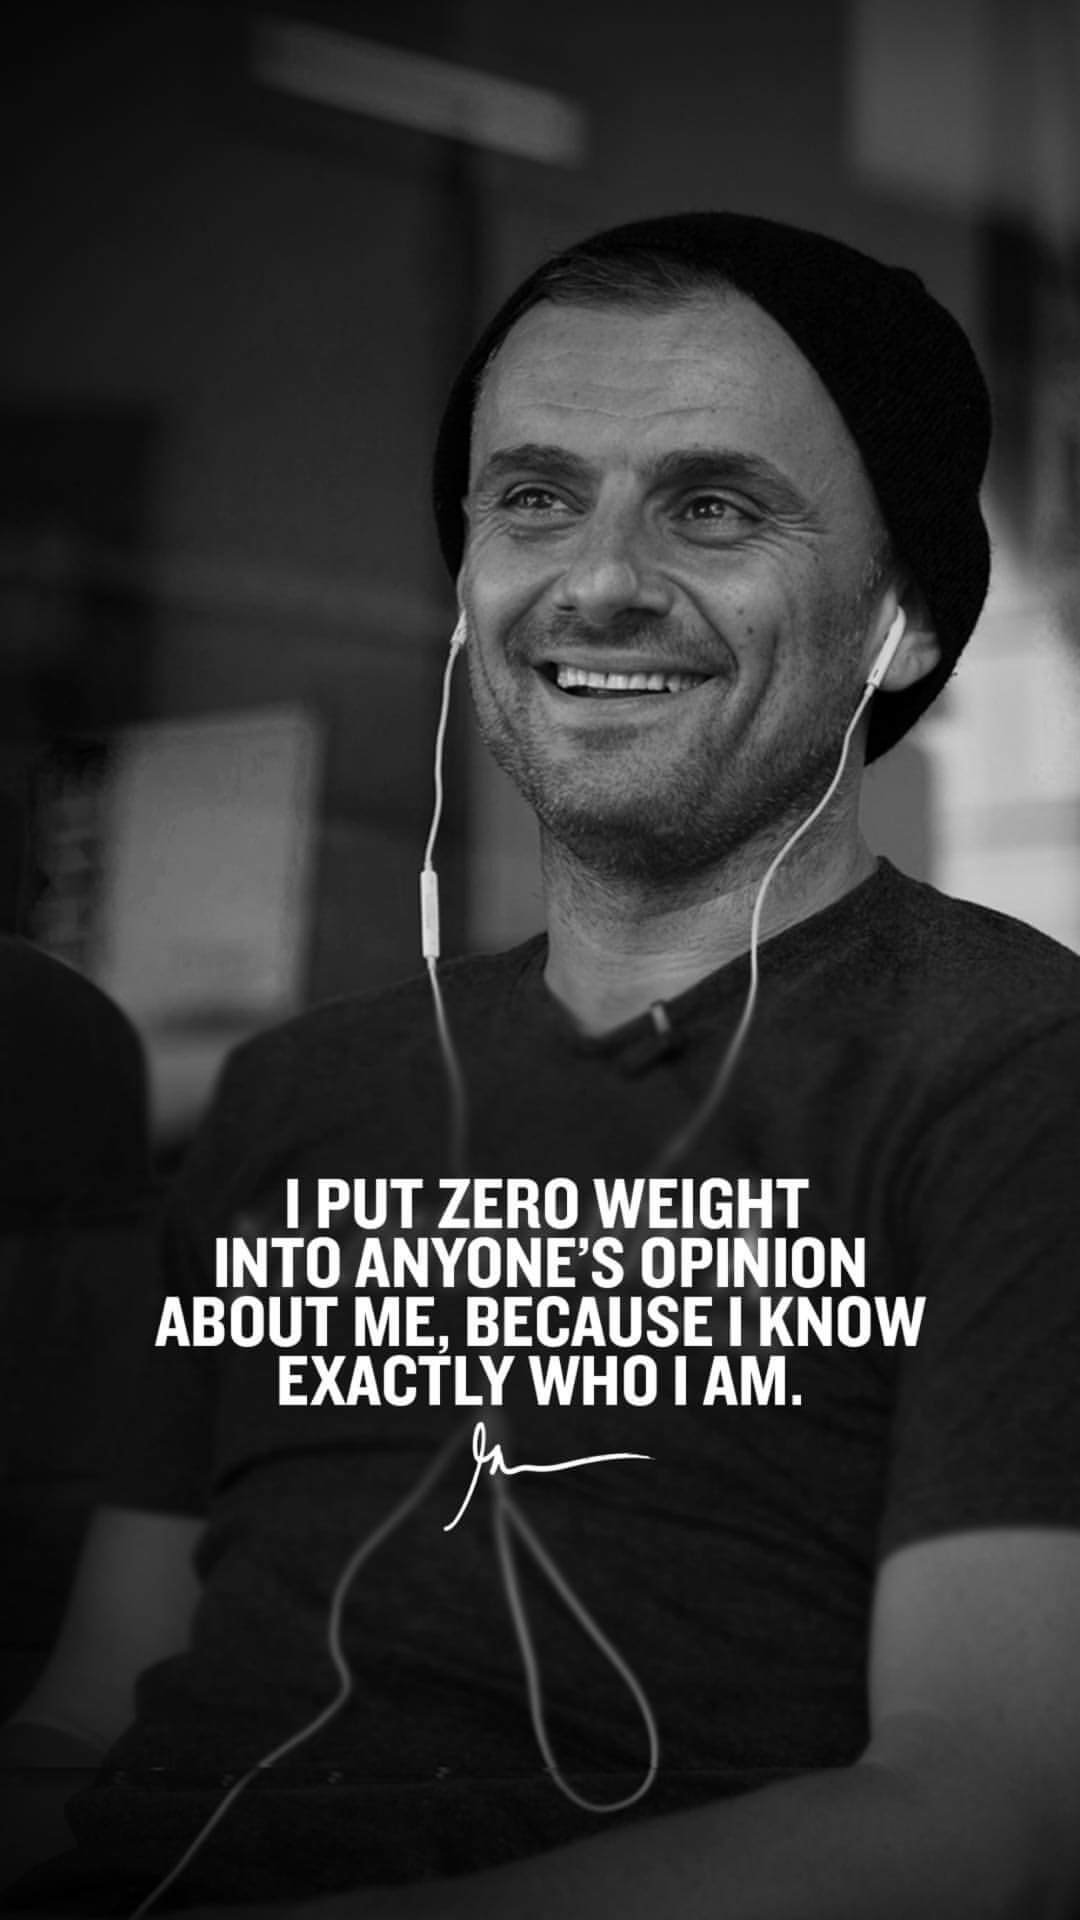 I Put Zero Weight Into Anyone's Opinion About Me Because I Know Exactly Who I Am